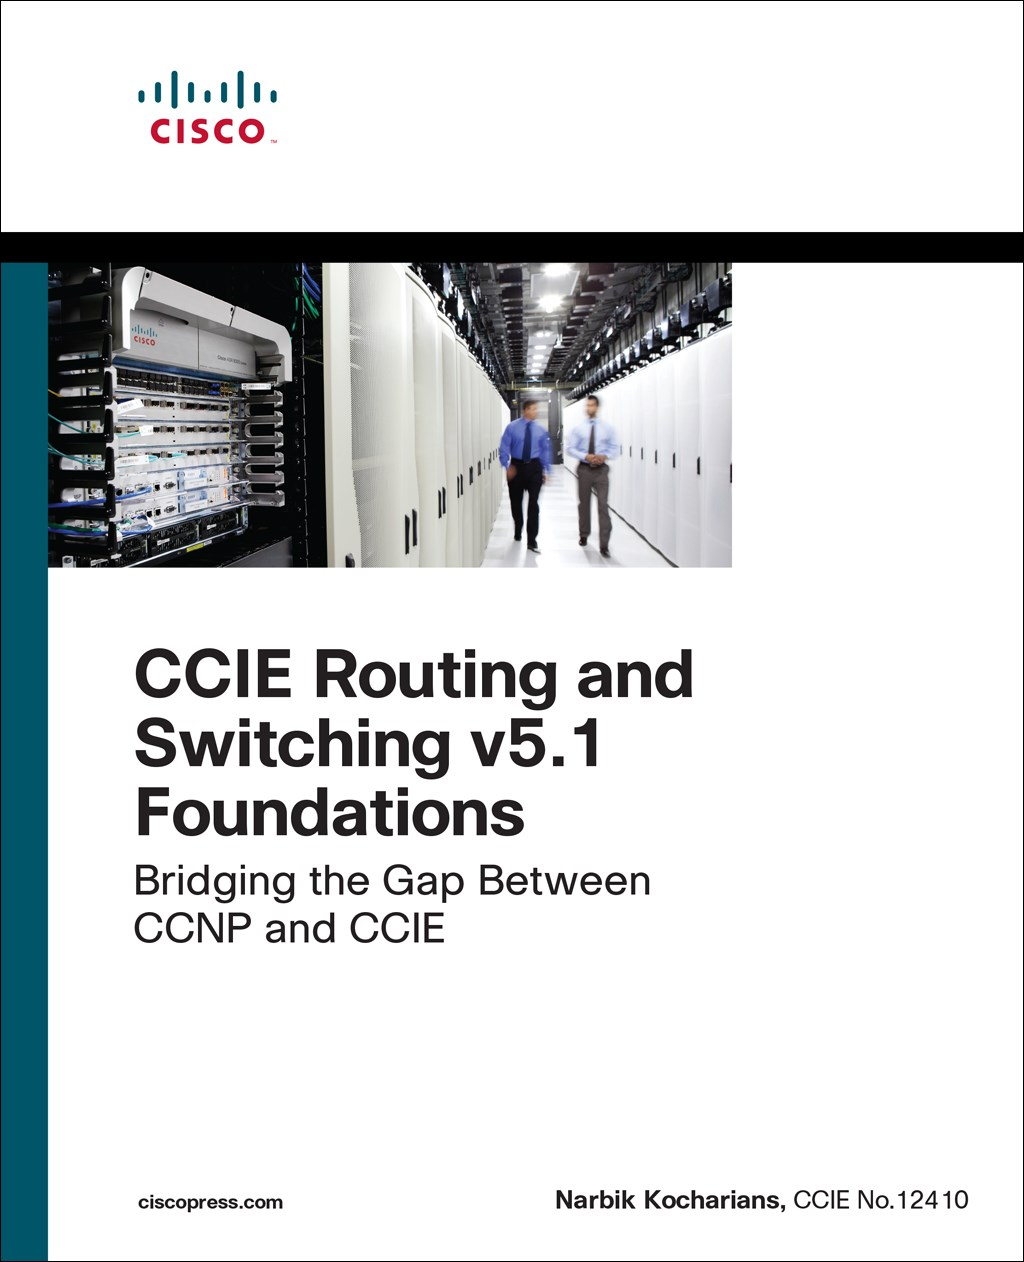 CCIE Routing and Switching v5.1 Foundations: Bridging the Gap Between CCNP and CCIE